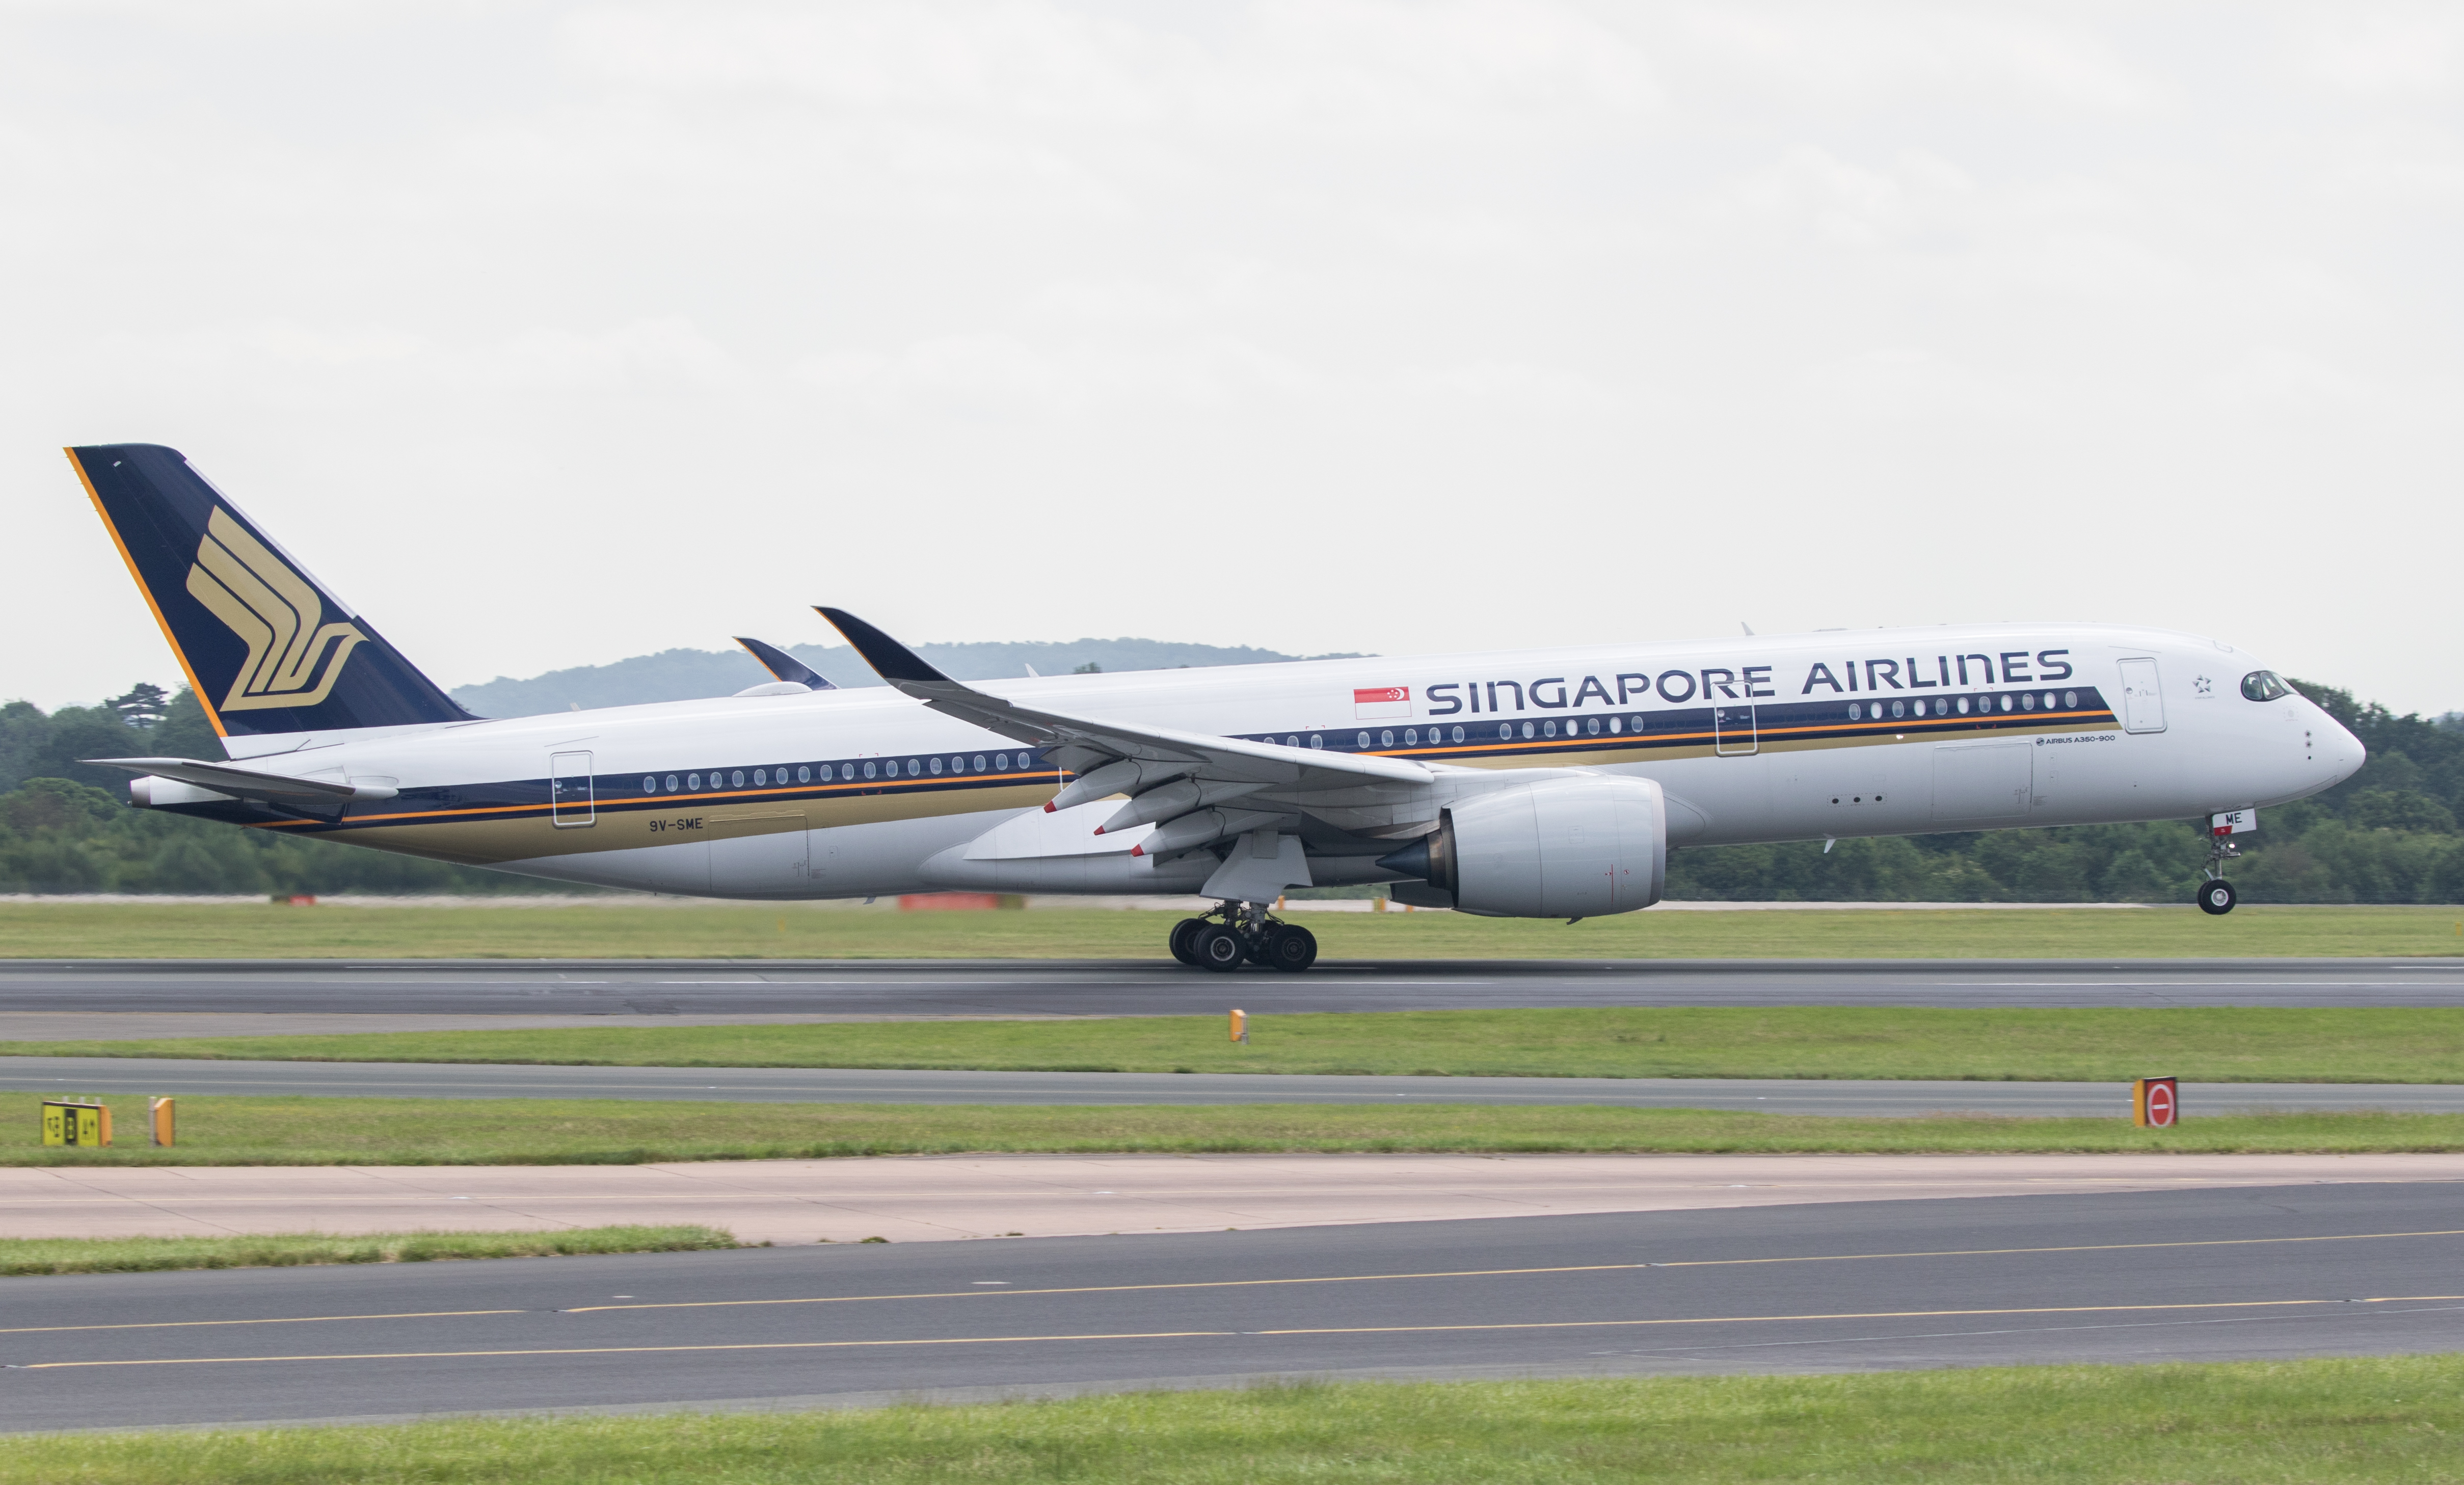 Singapore AIrlines Airbus A350.